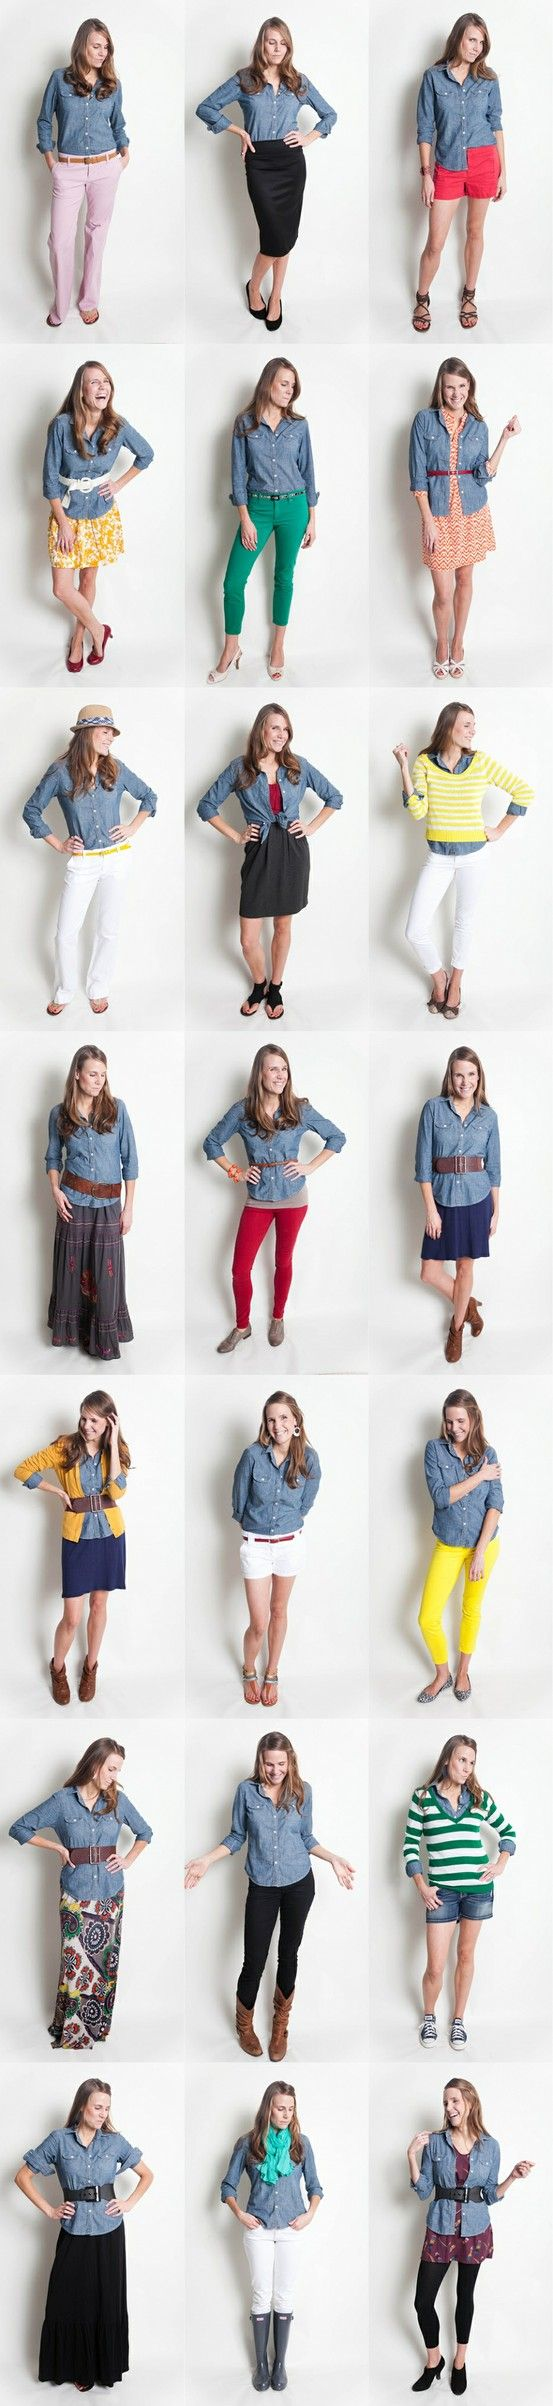 Different ways to wear a denim shirt.